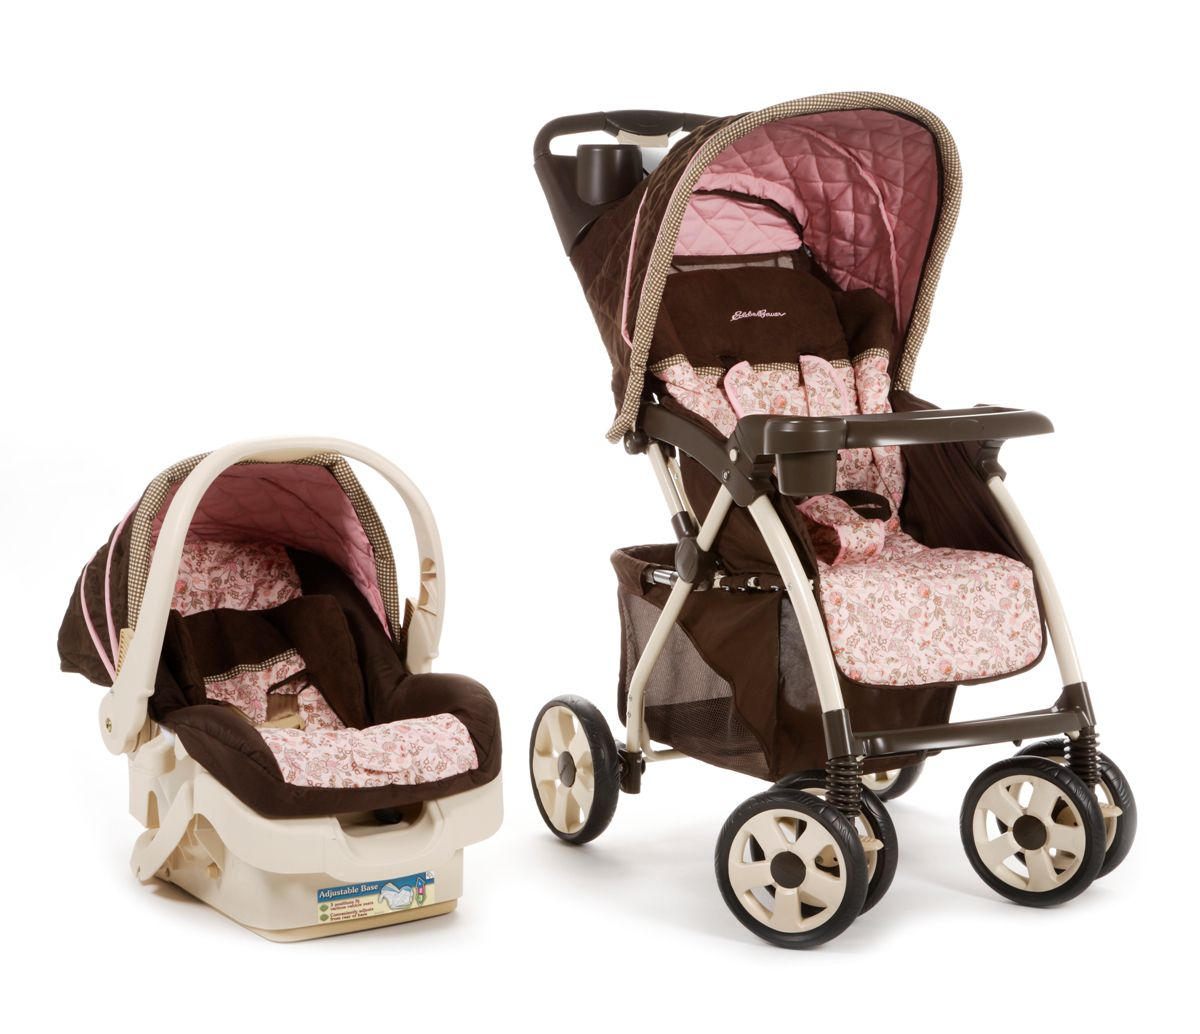 Adventurer Sport Baby Travel System, Michelle